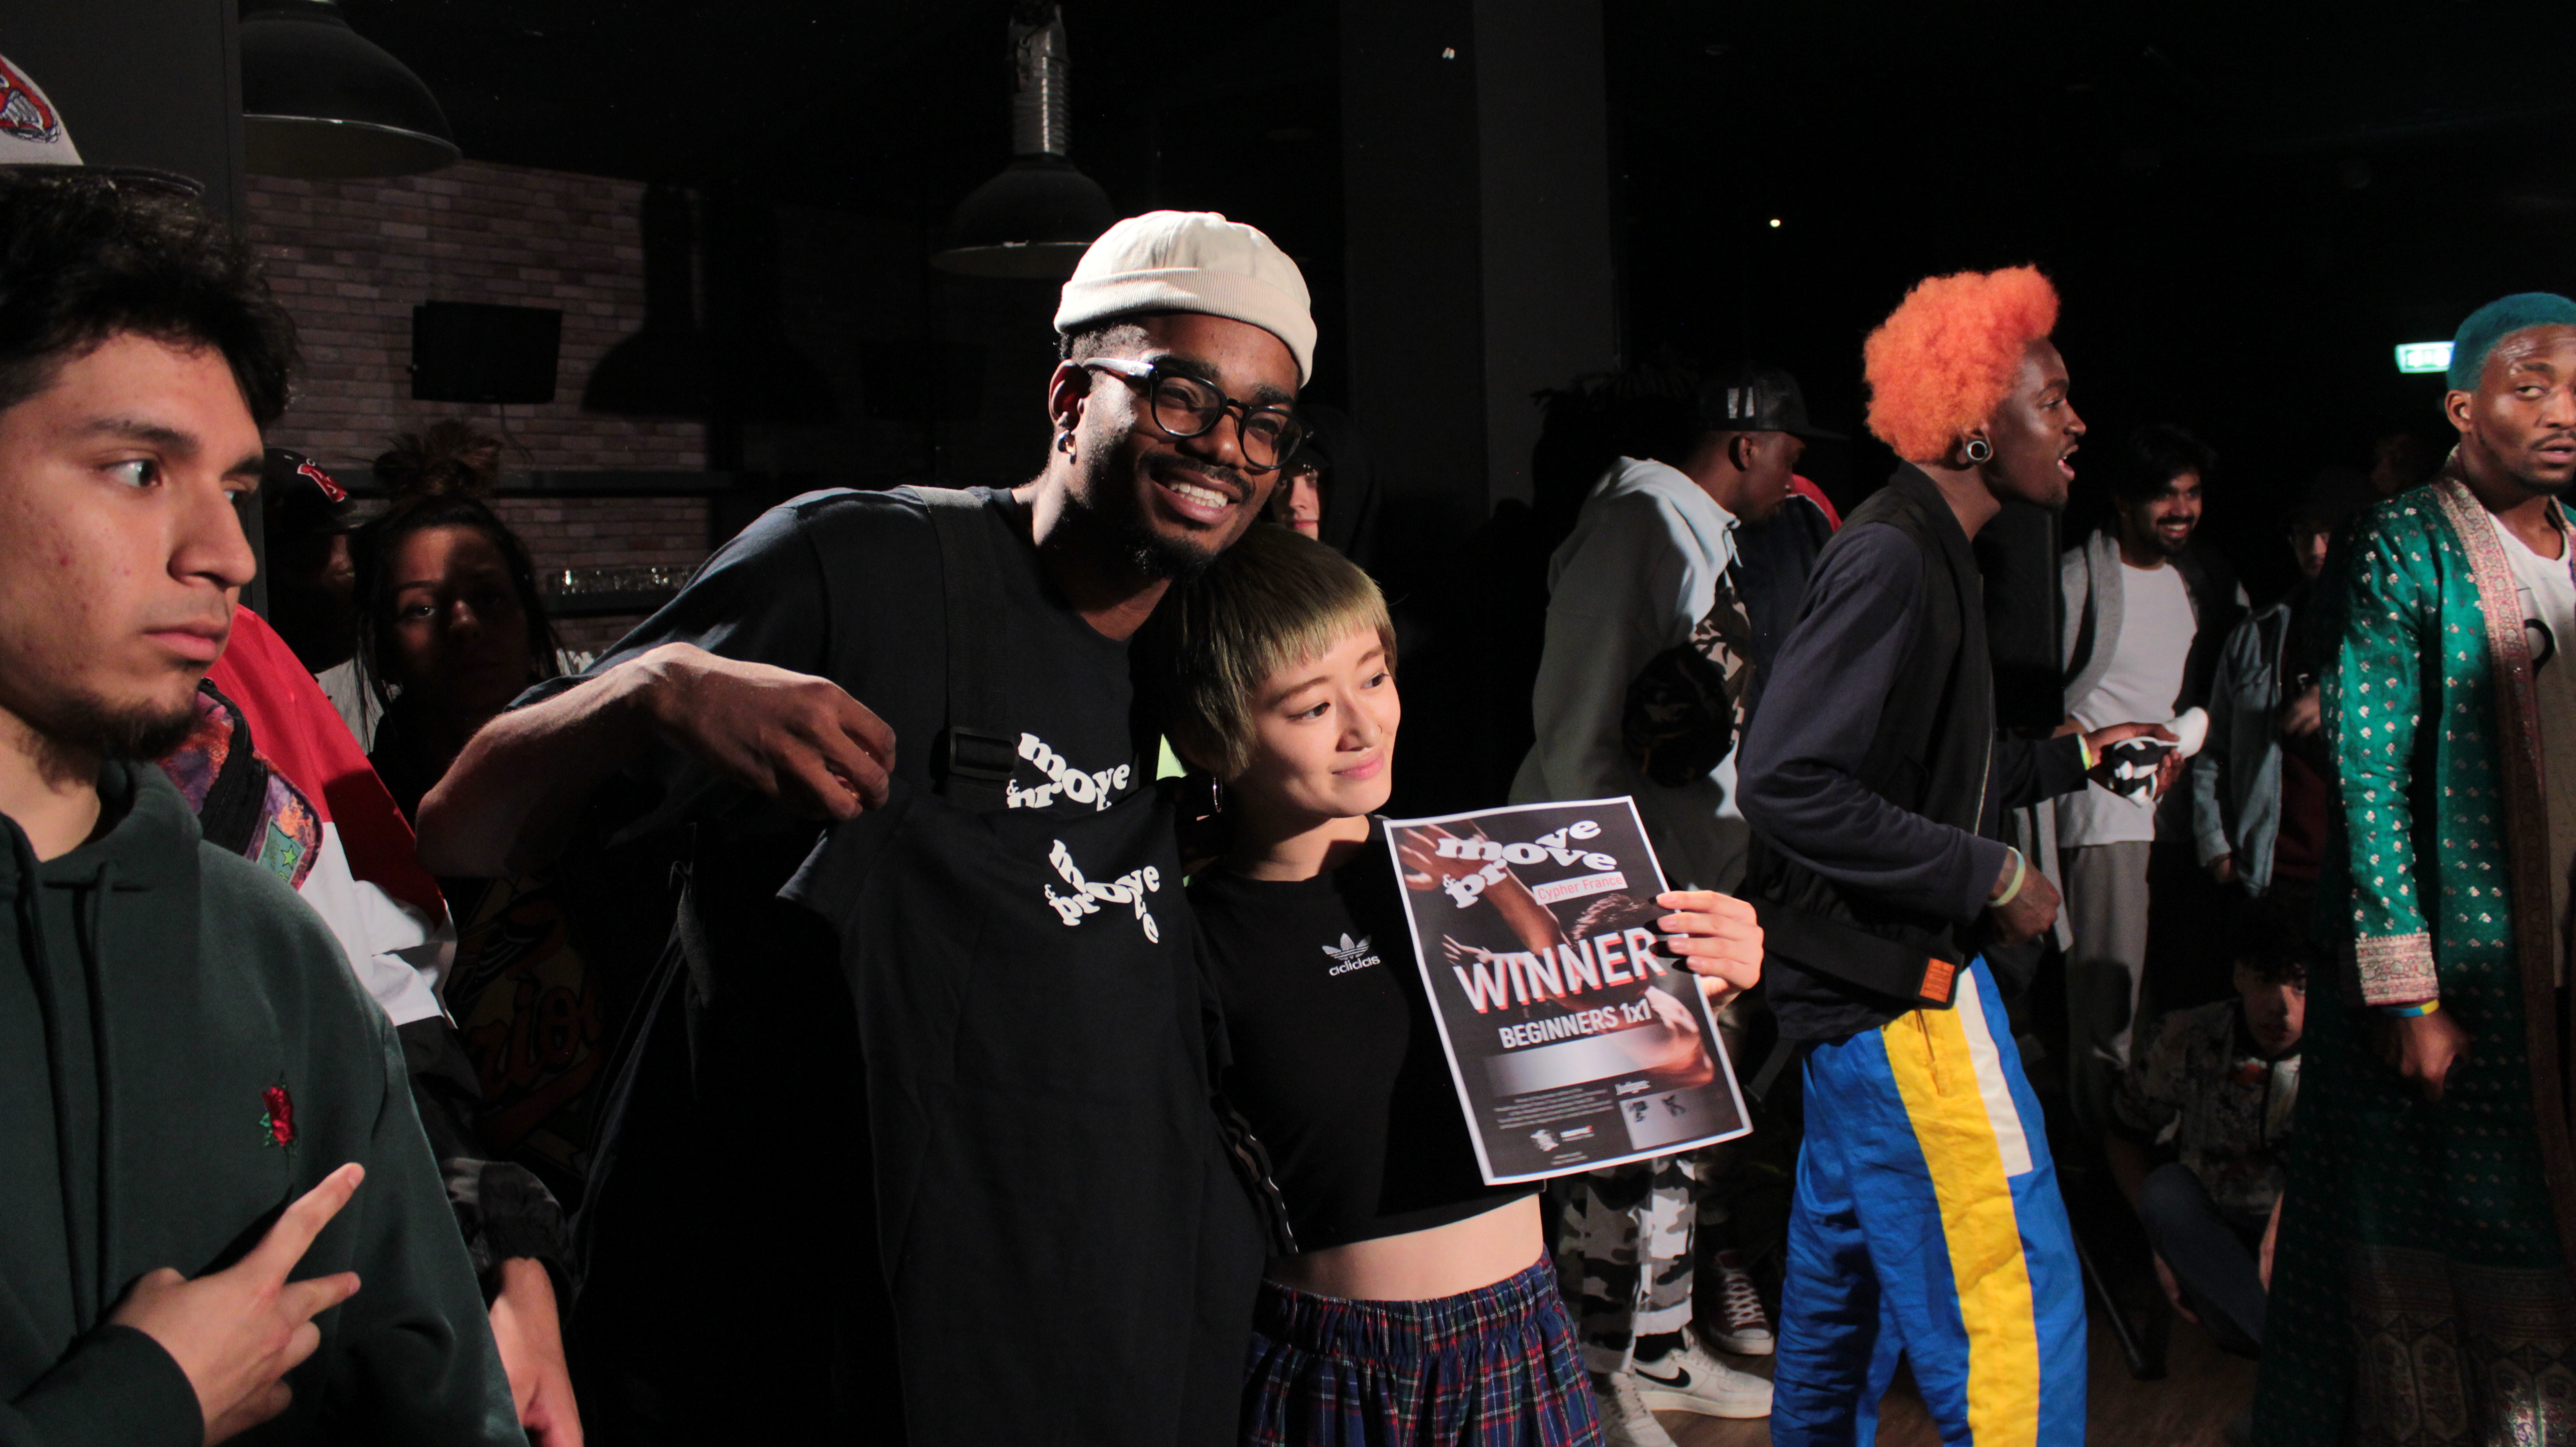 Milliard with Chino, winner of Beginners in Move&Prove France